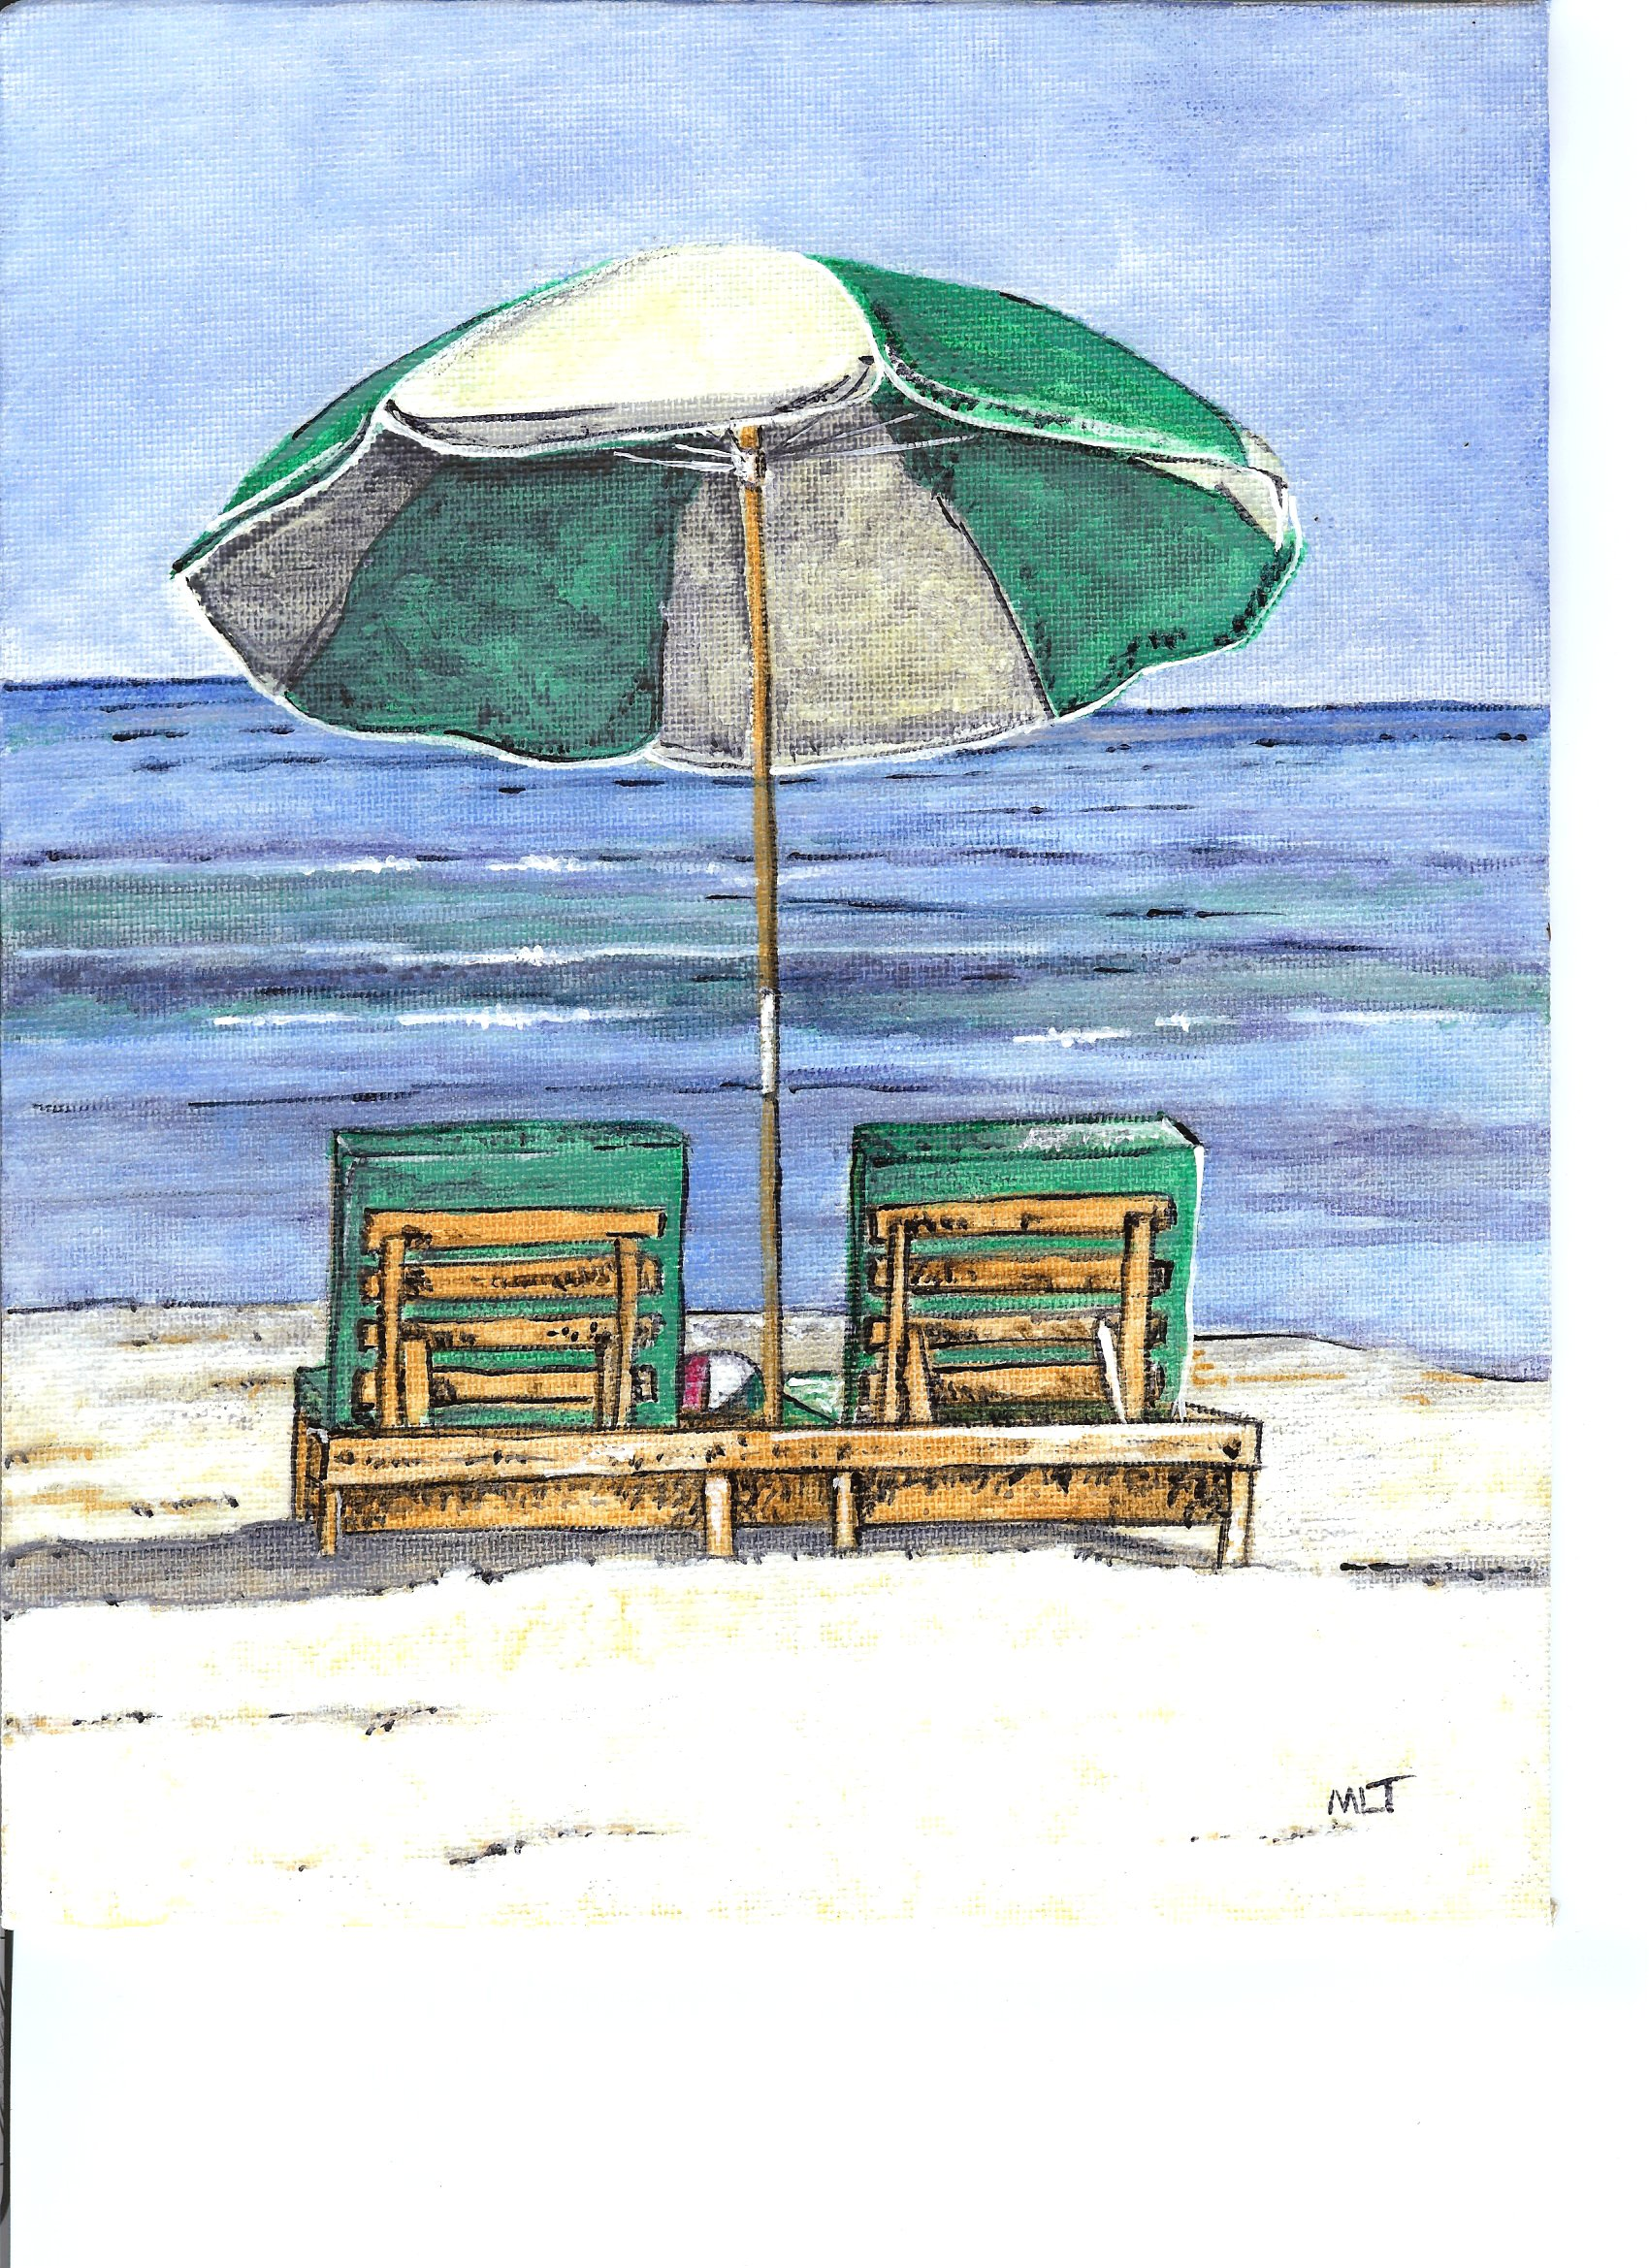 Beach chair with umbrella painting - Gallery For Gt Beach Umbrella Drawing